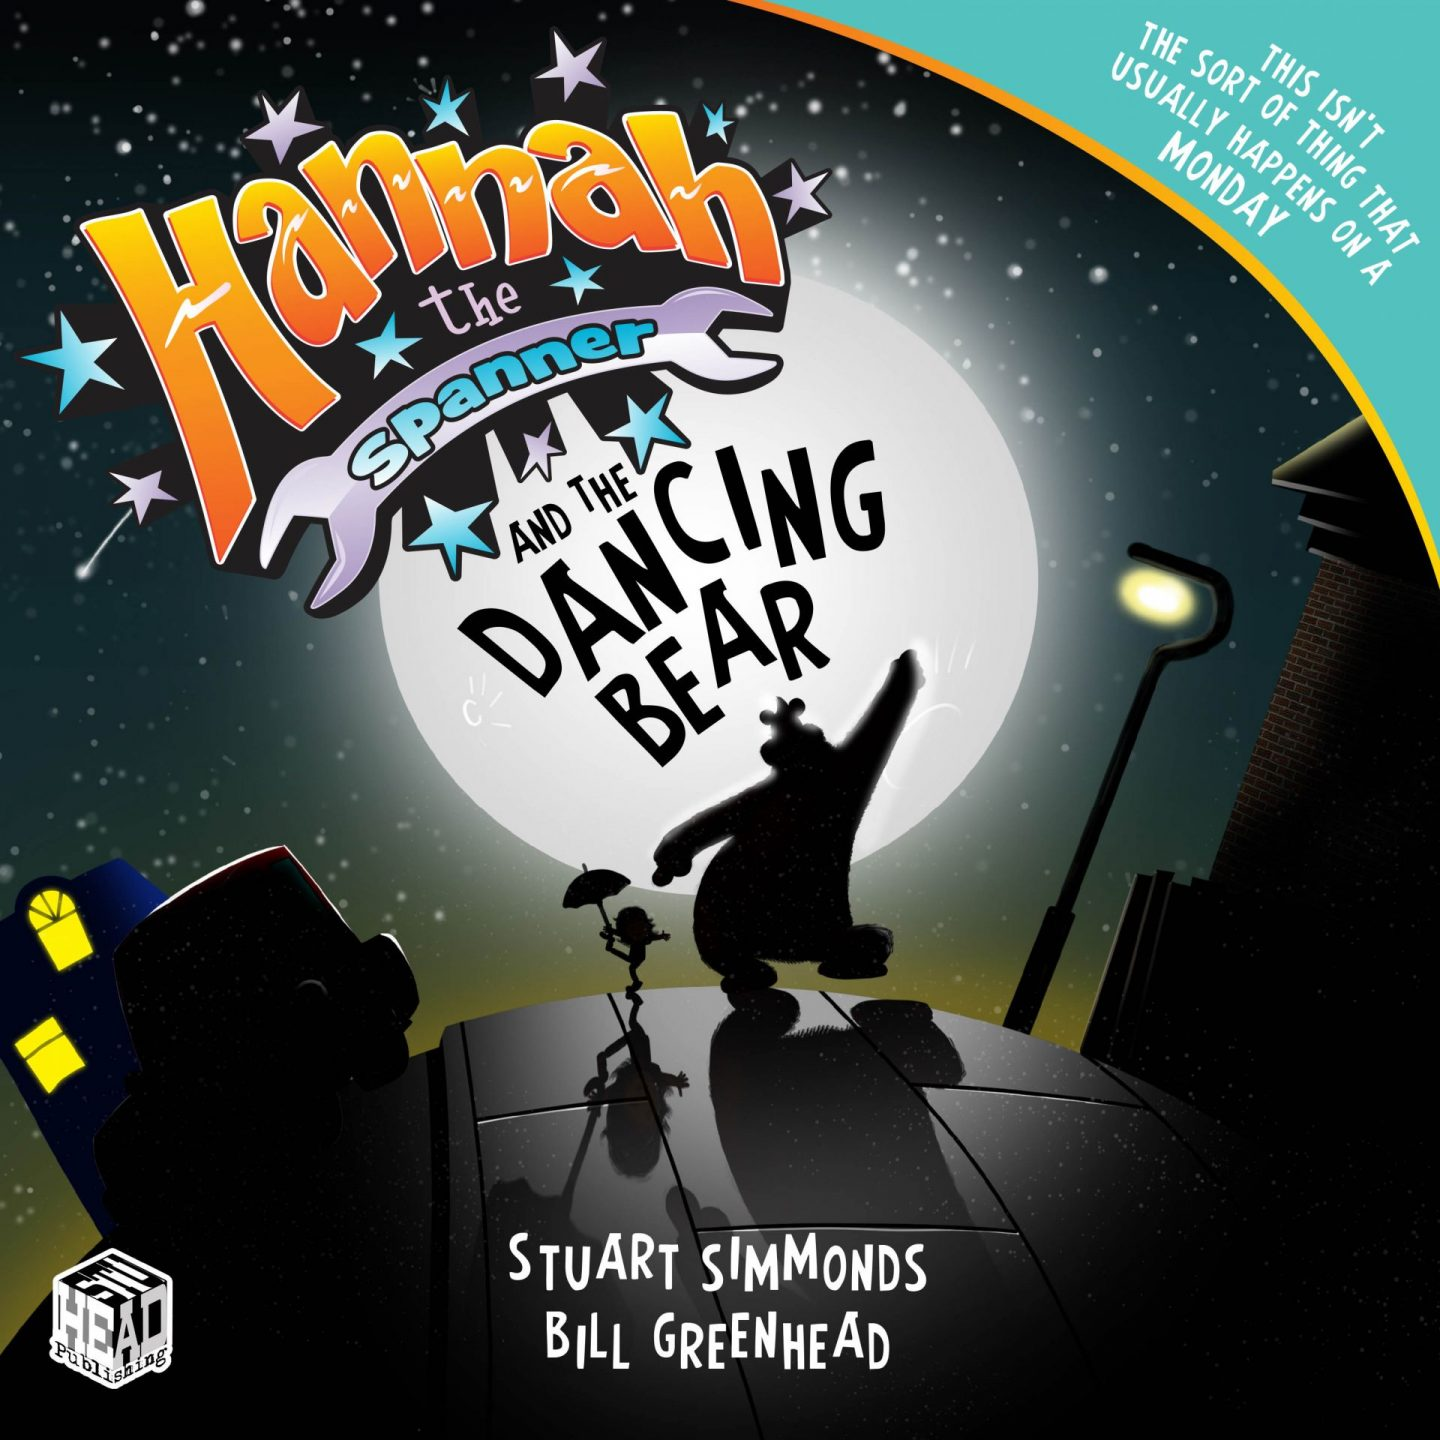 Hannah the Spanner, Hannah and the Dancing Bear written by Stuart Simmonds